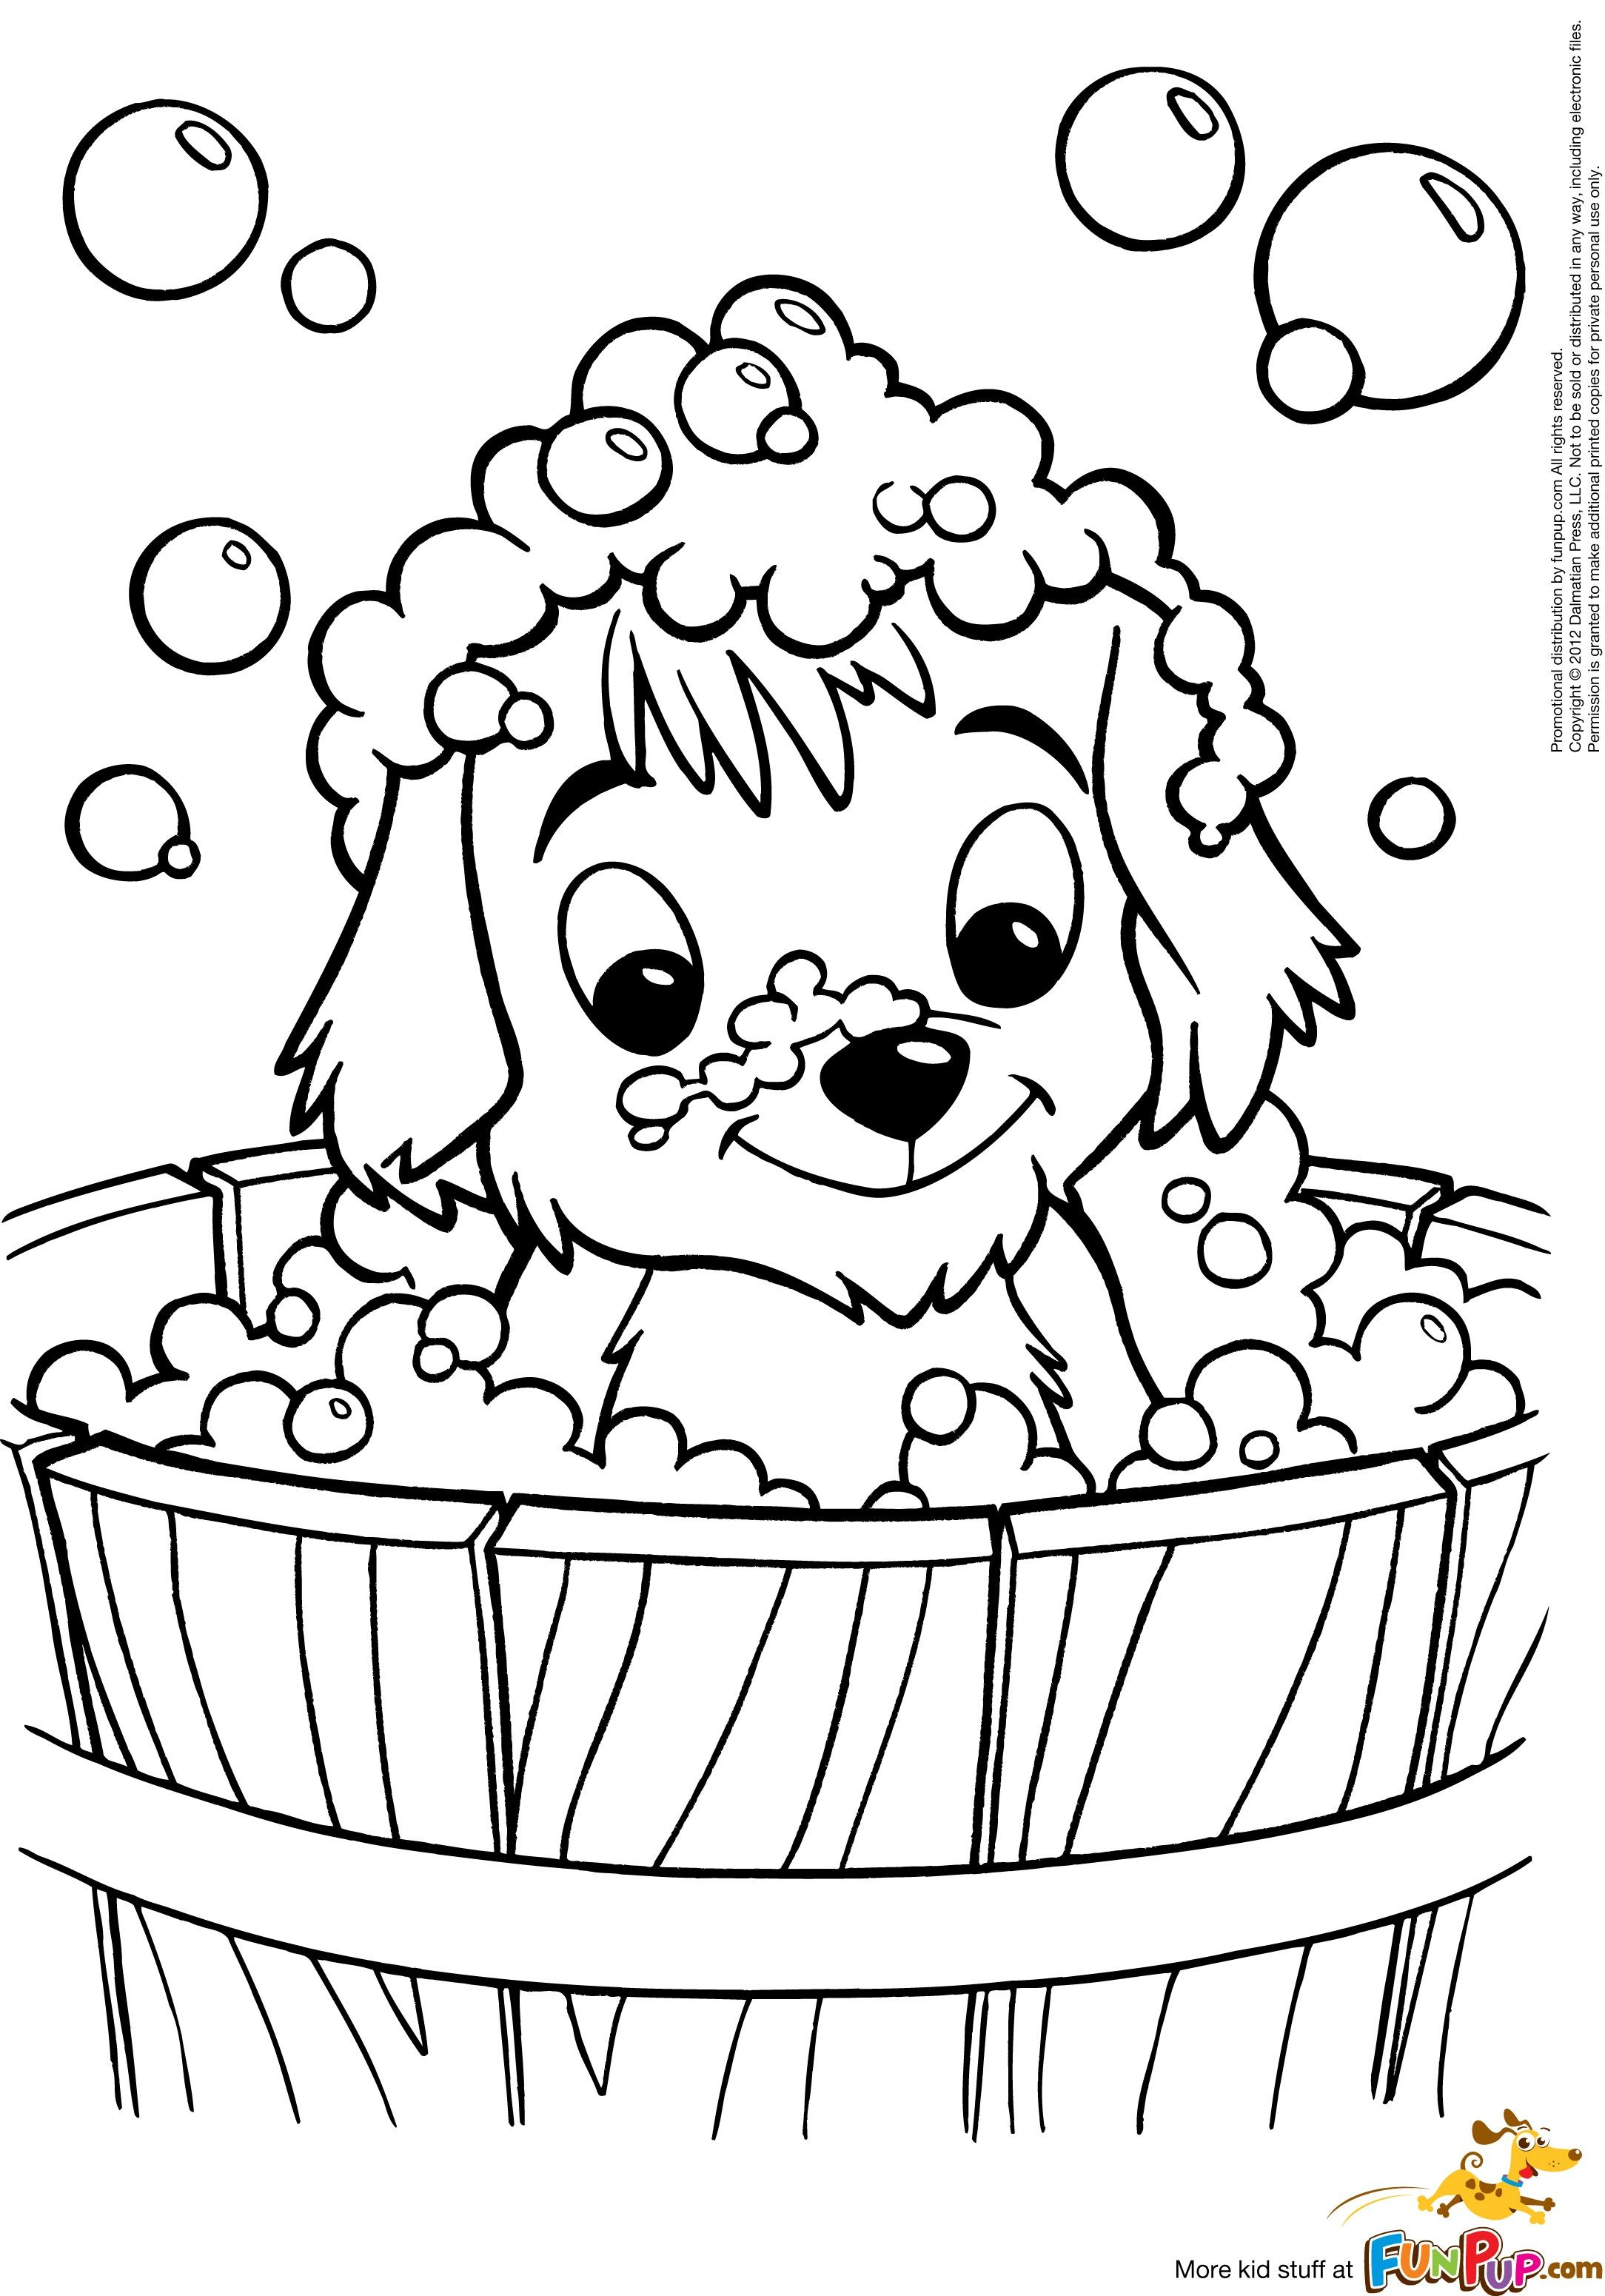 Christmas Kaleidoscope Coloring Pages With Cute Puppy New Page Pinterest